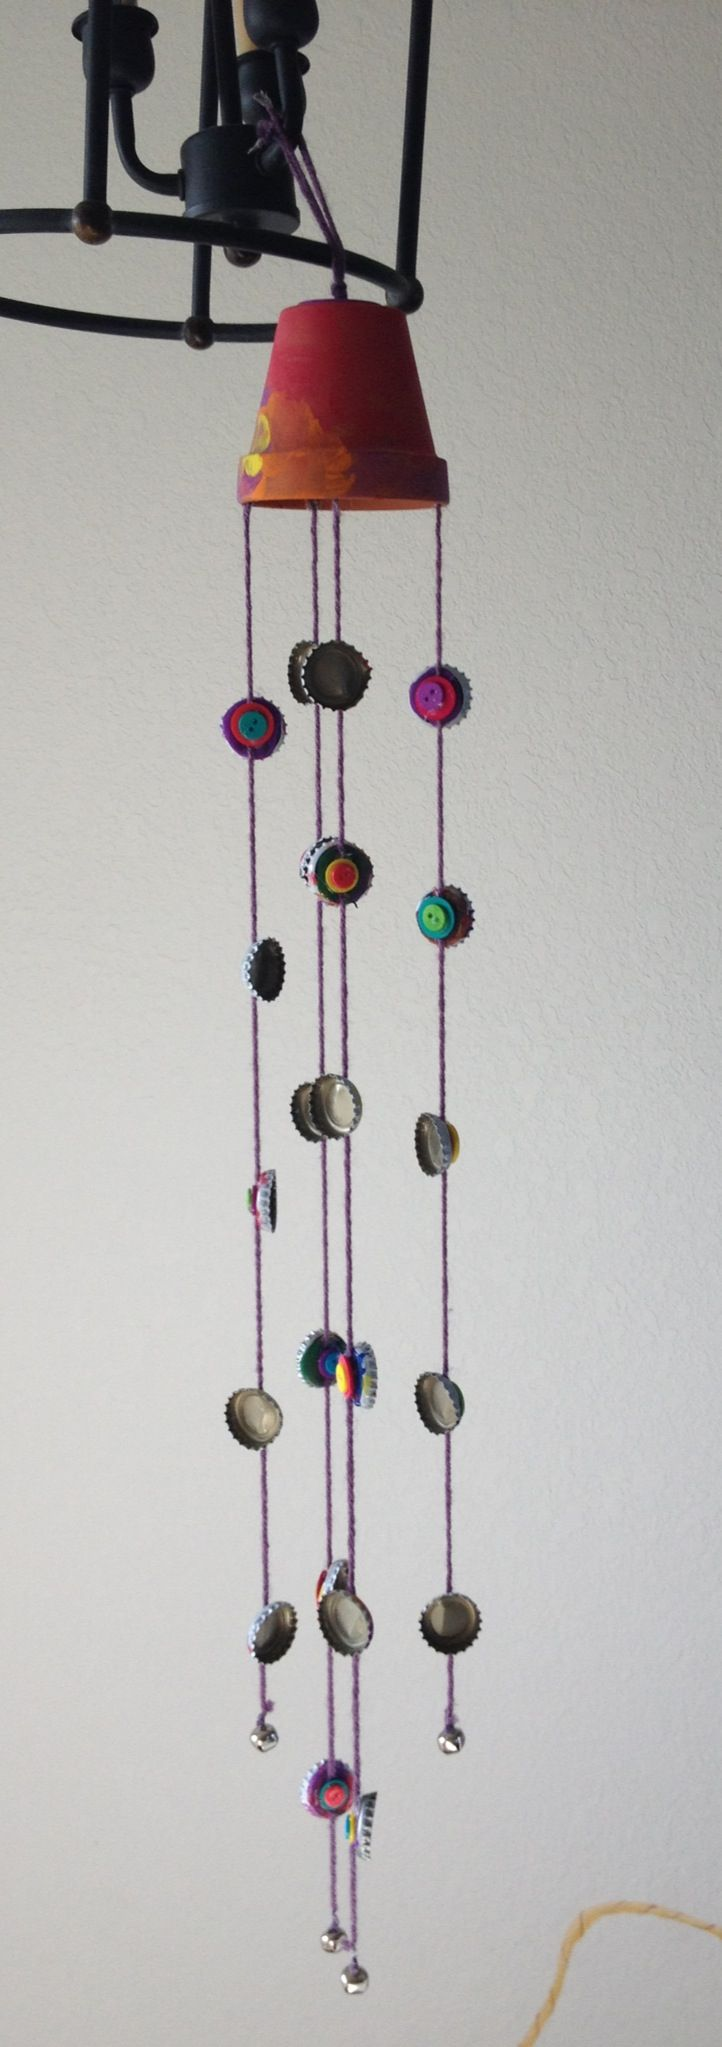 Best 25 homemade wind chimes ideas on pinterest for Easy wind chimes